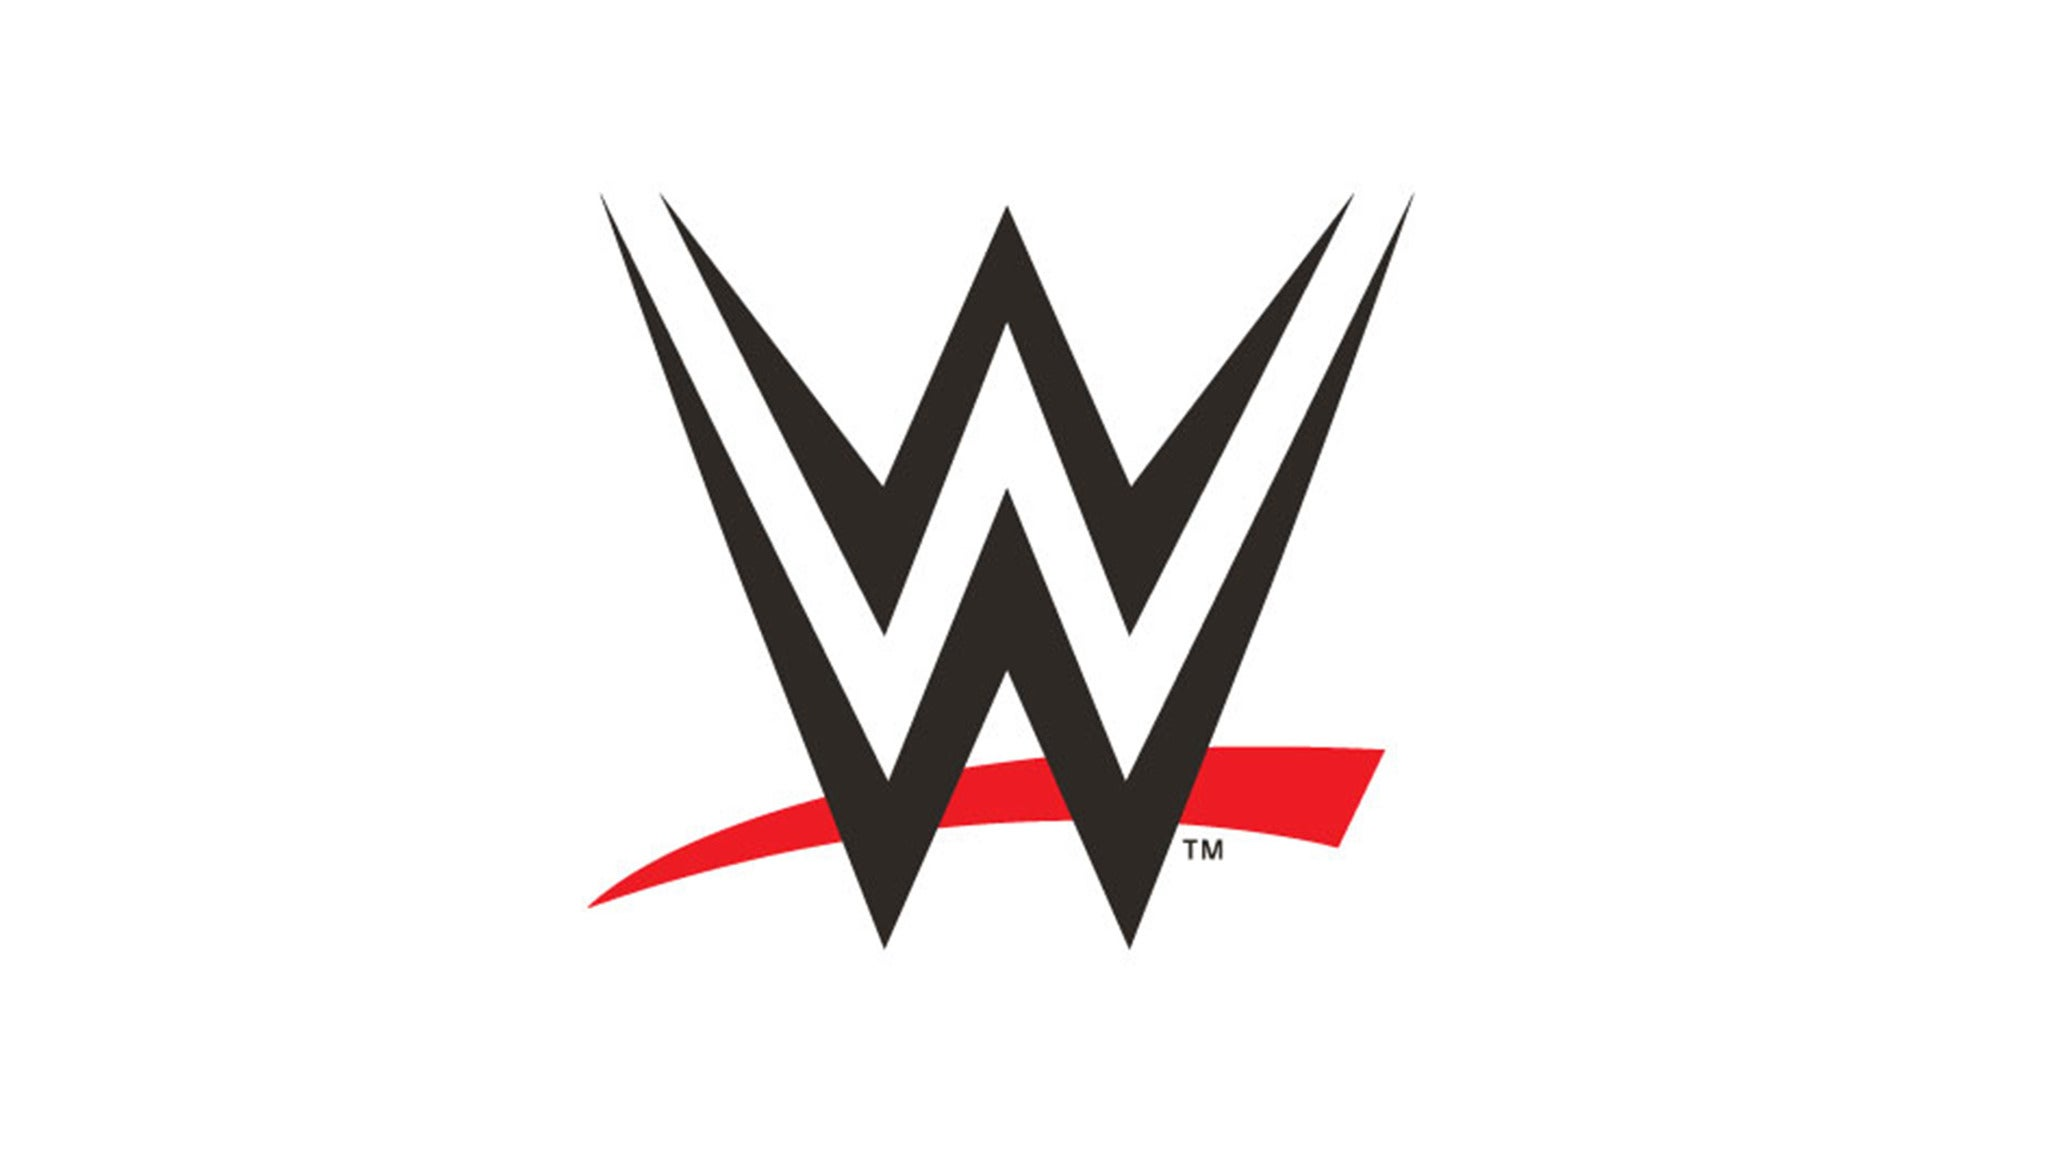 WWE - World Wrestling Entertainment at Toyota Center - TX